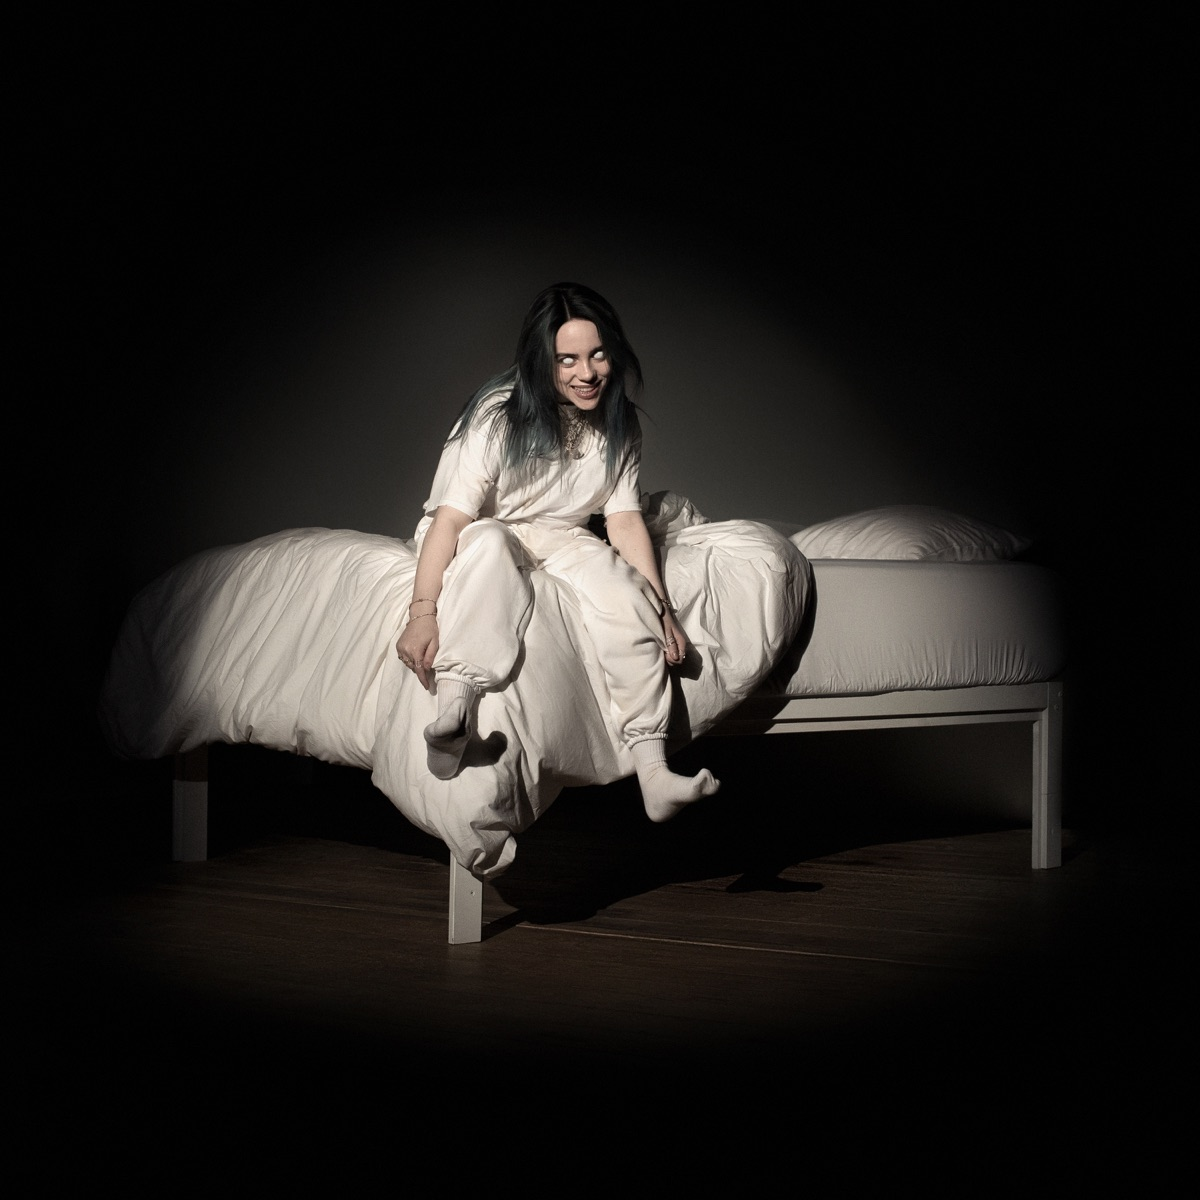 WHEN WE ALL FALL ASLEEP WHERE DO WE GO Billie Eilish CD cover